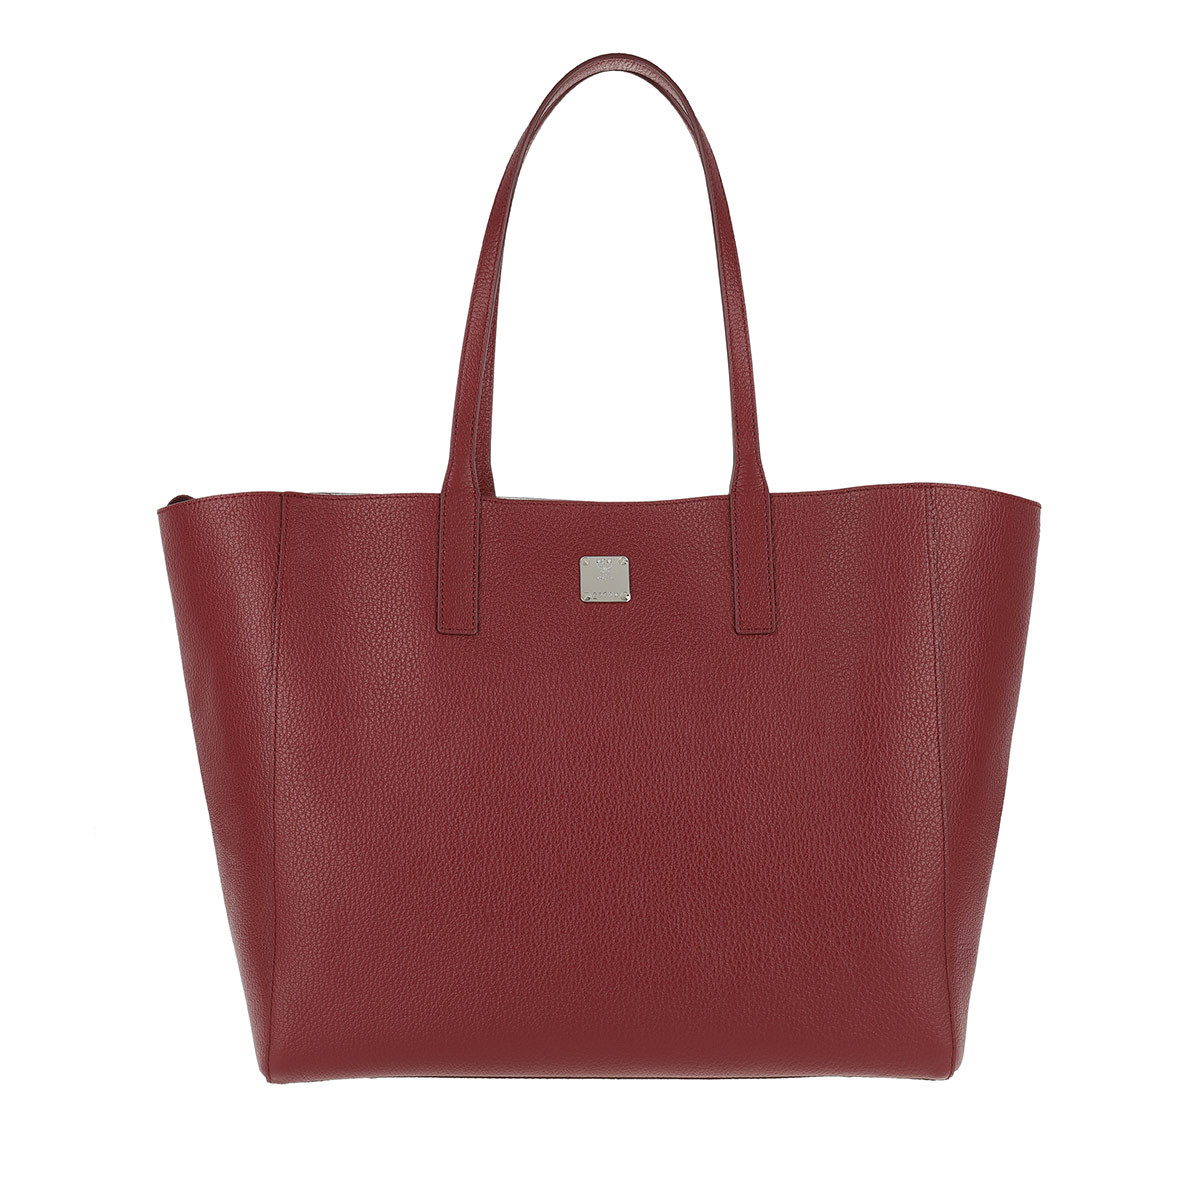 MCM Shopper - Koppelene Shopper Medium Ruby Tan - in rot - für Damen